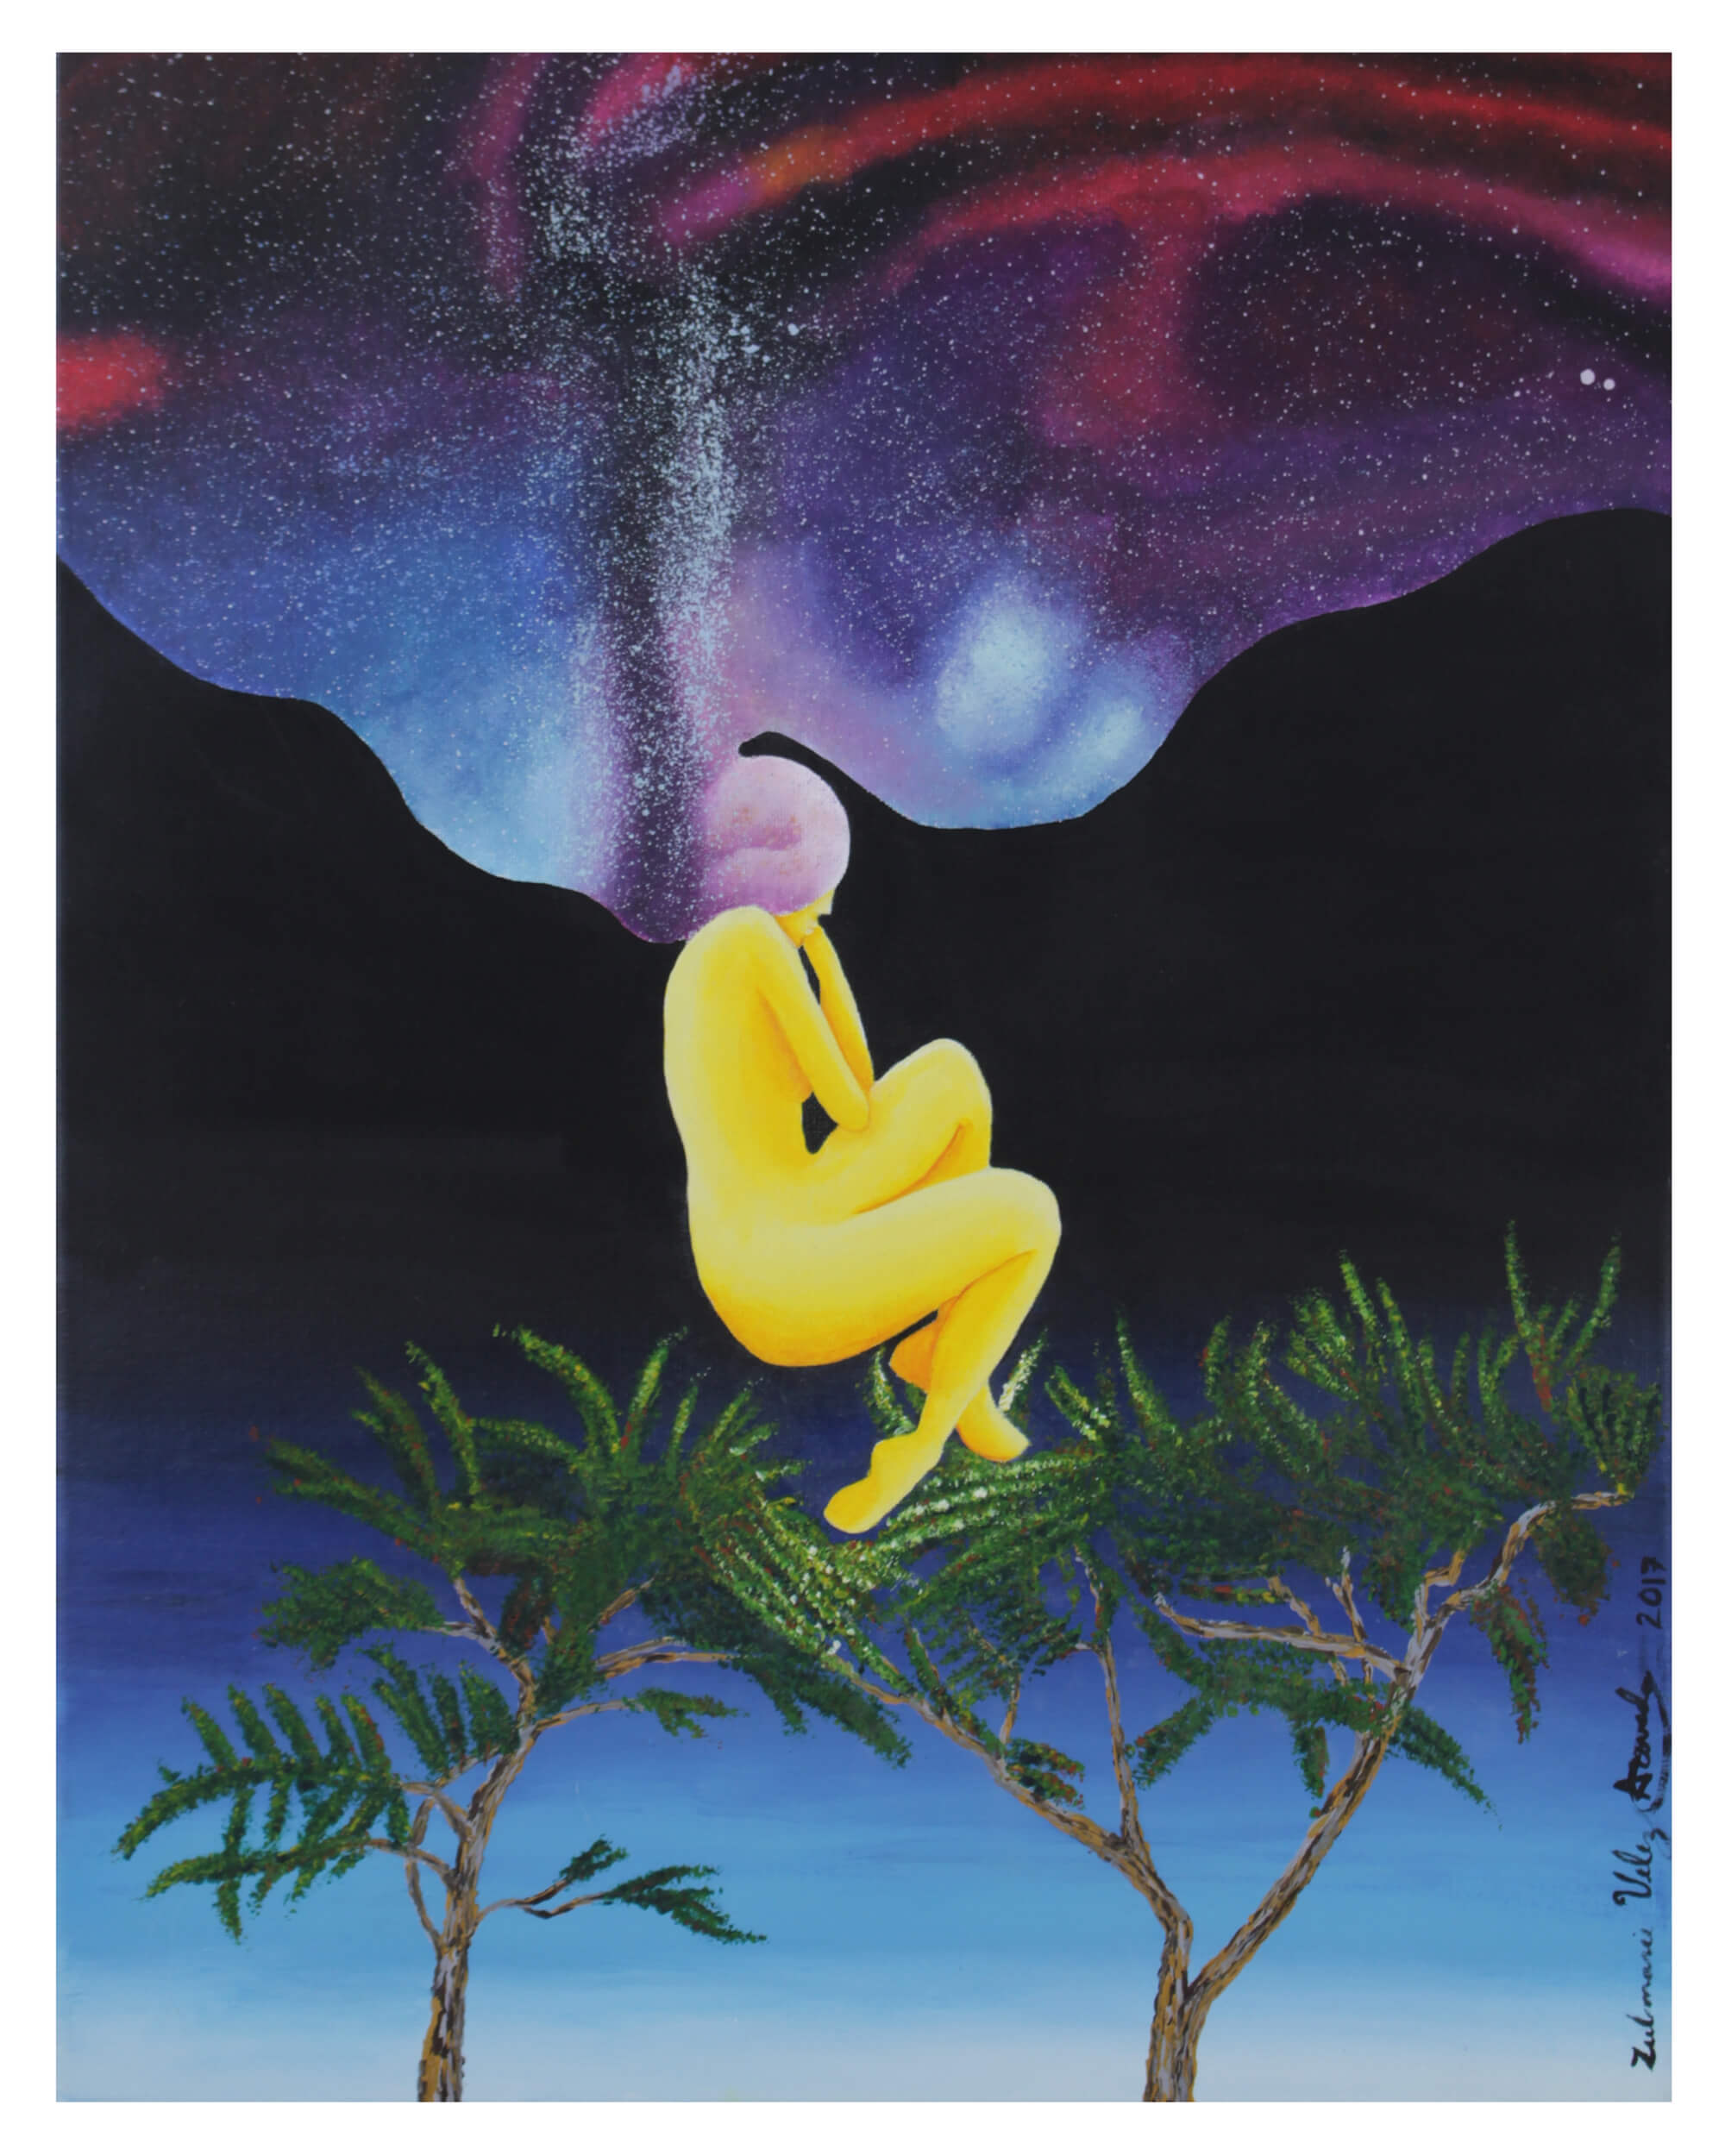 Print of a yellow woman levitating in seating position over two trees with aurora borealis on the horizon emerging from dark mountains by Zulmarie Vélez Acevedo